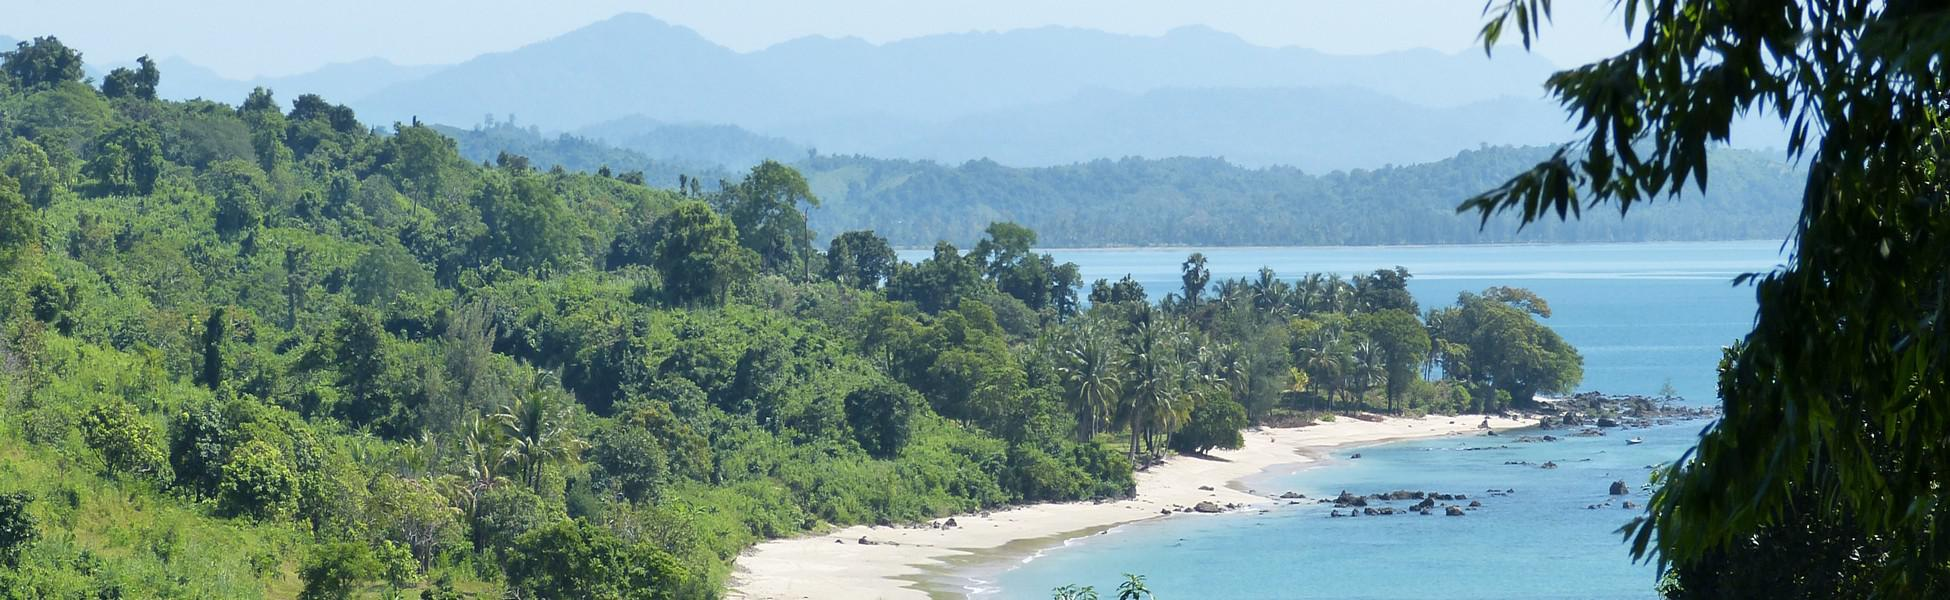 Go myanmar south of ngapali beach thecheapjerseys Images